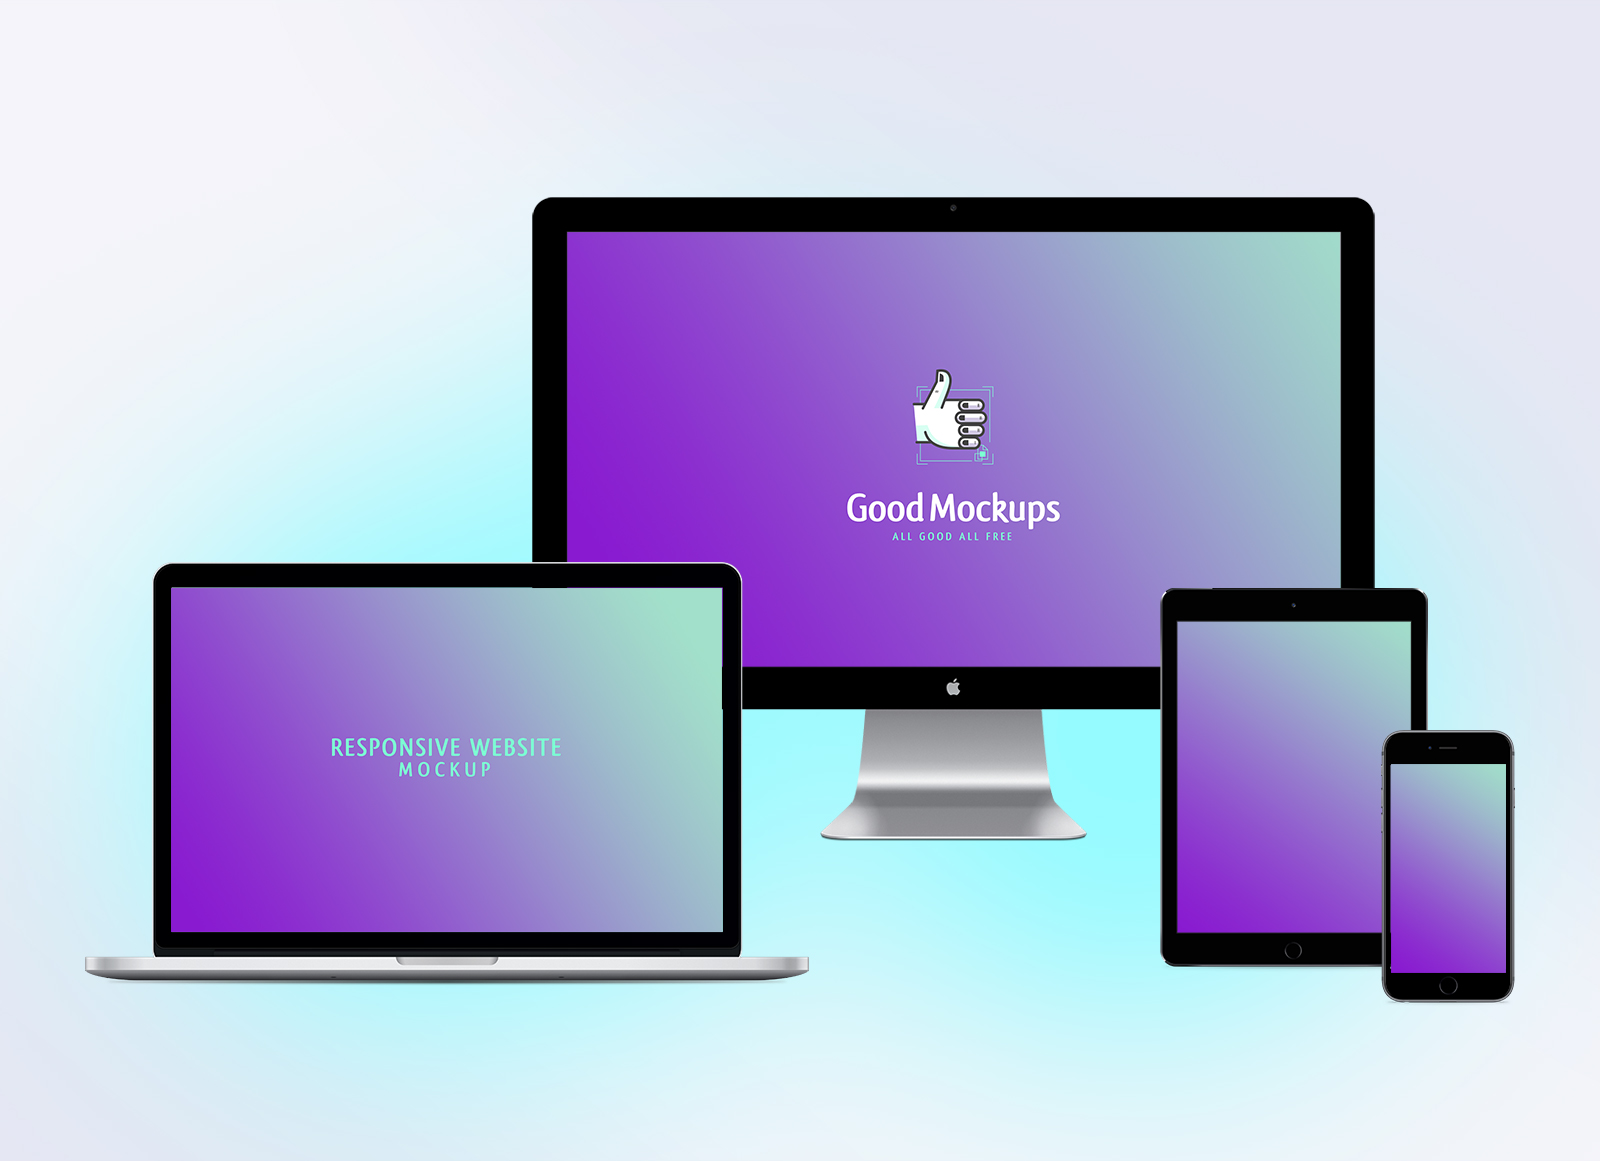 Free-Responsive-Website-Design-Apple-Devices-Mockup-PSD-Presentation